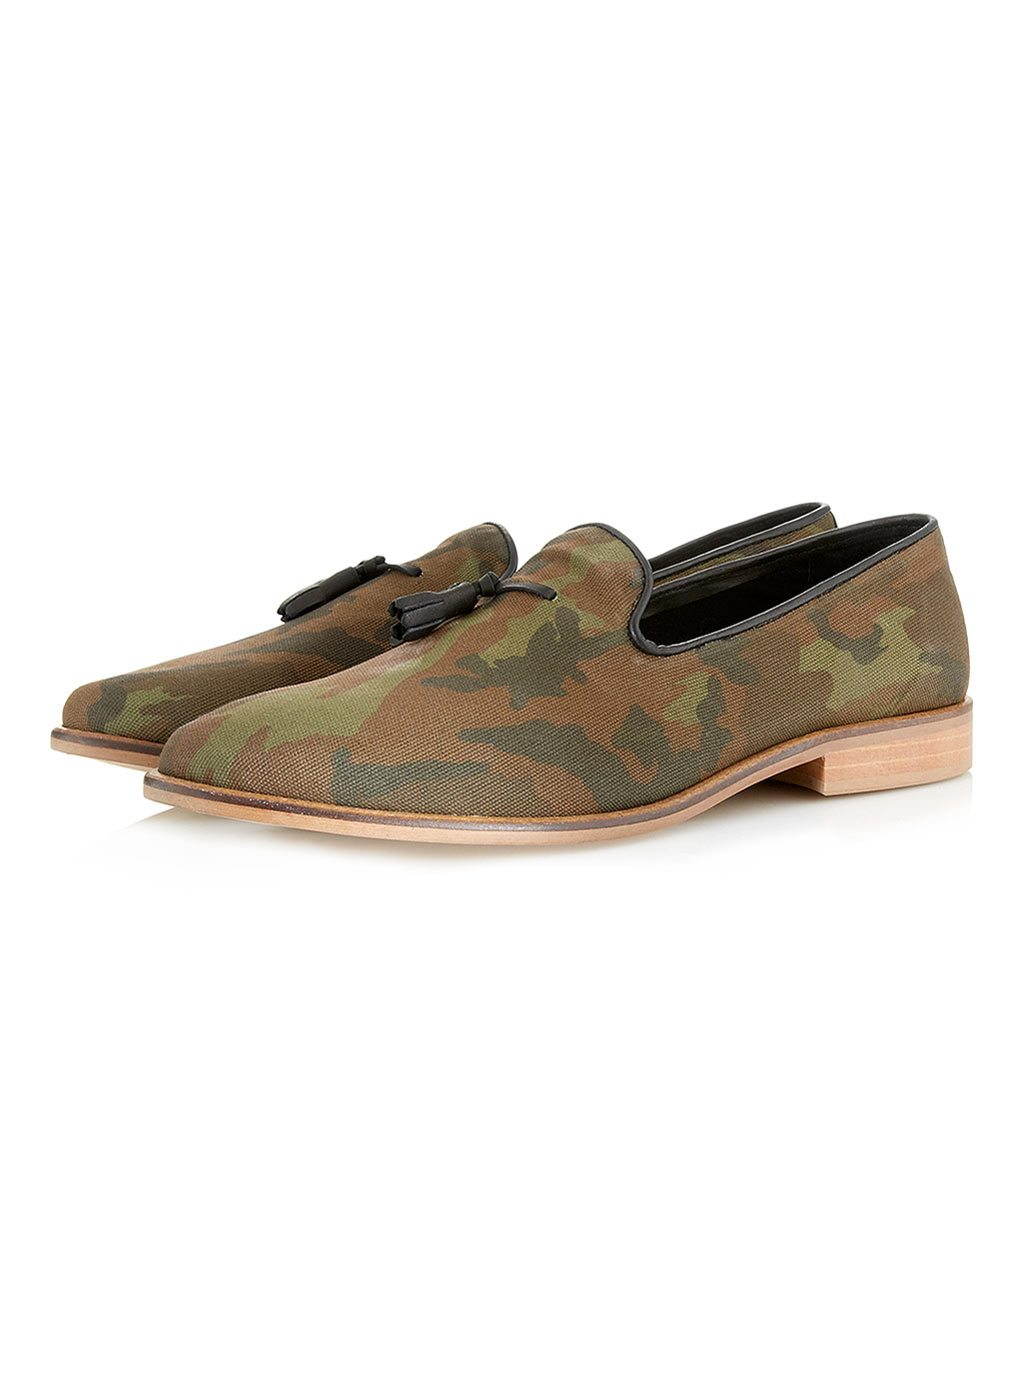 Mens Camouflage Slip On Shoes